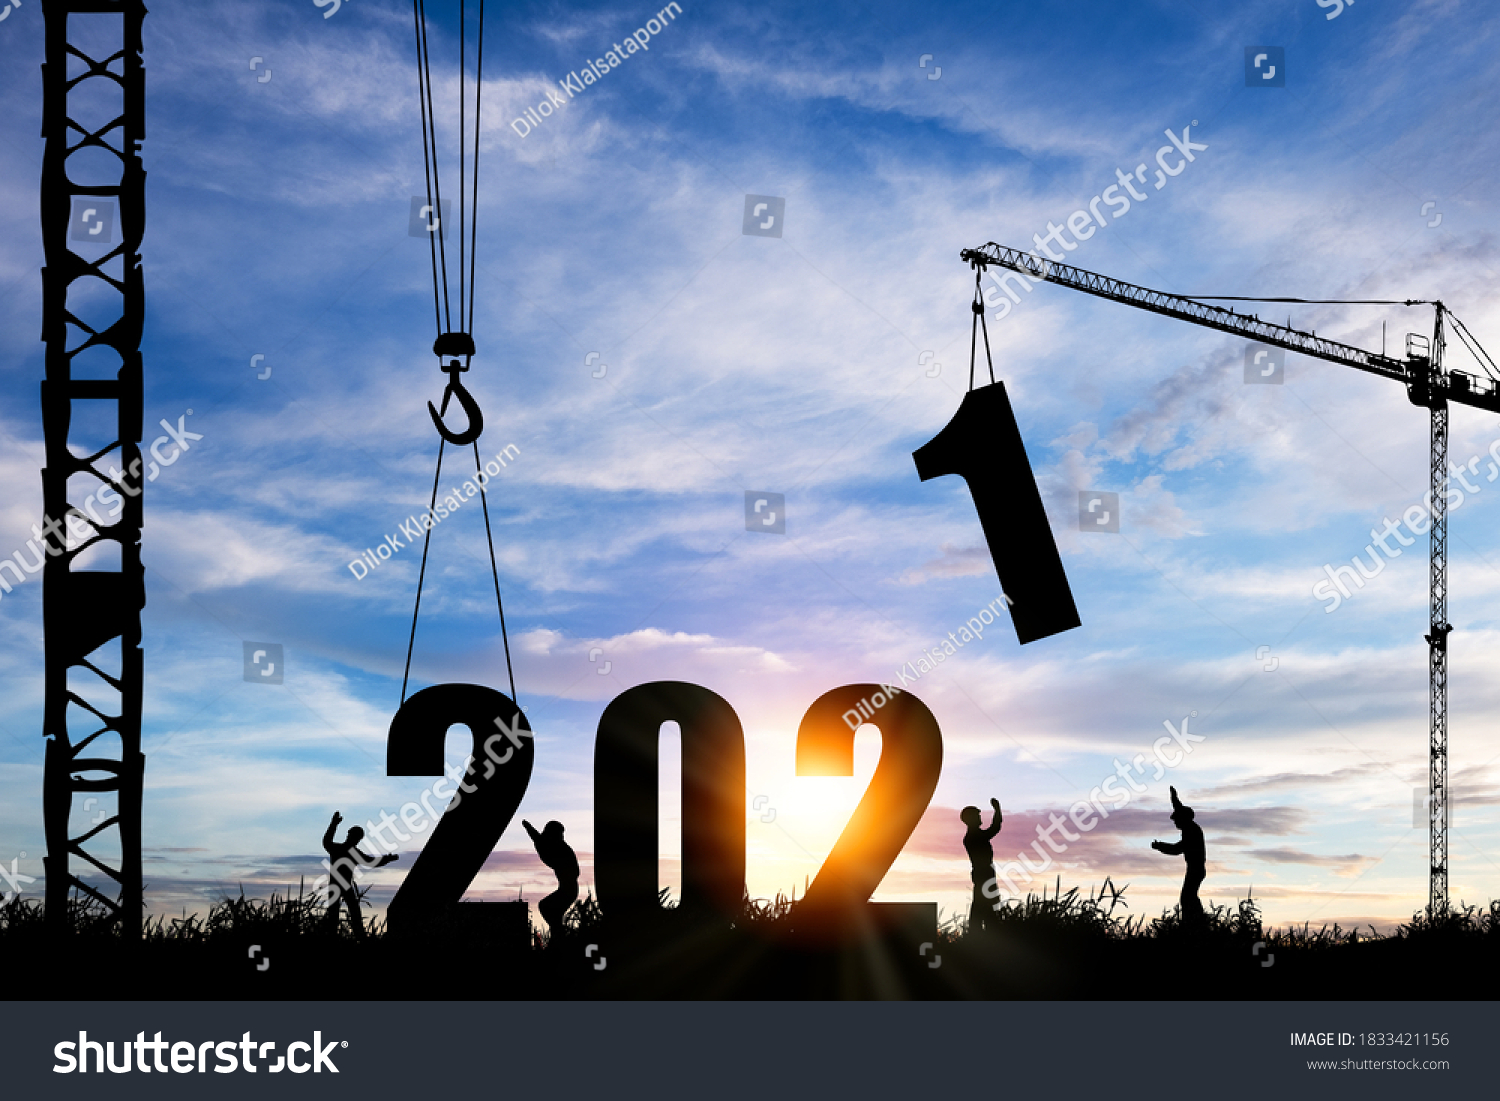 Silhouette of construction worker with crane under prepare welcome 2021 new year party and change new business. #1833421156